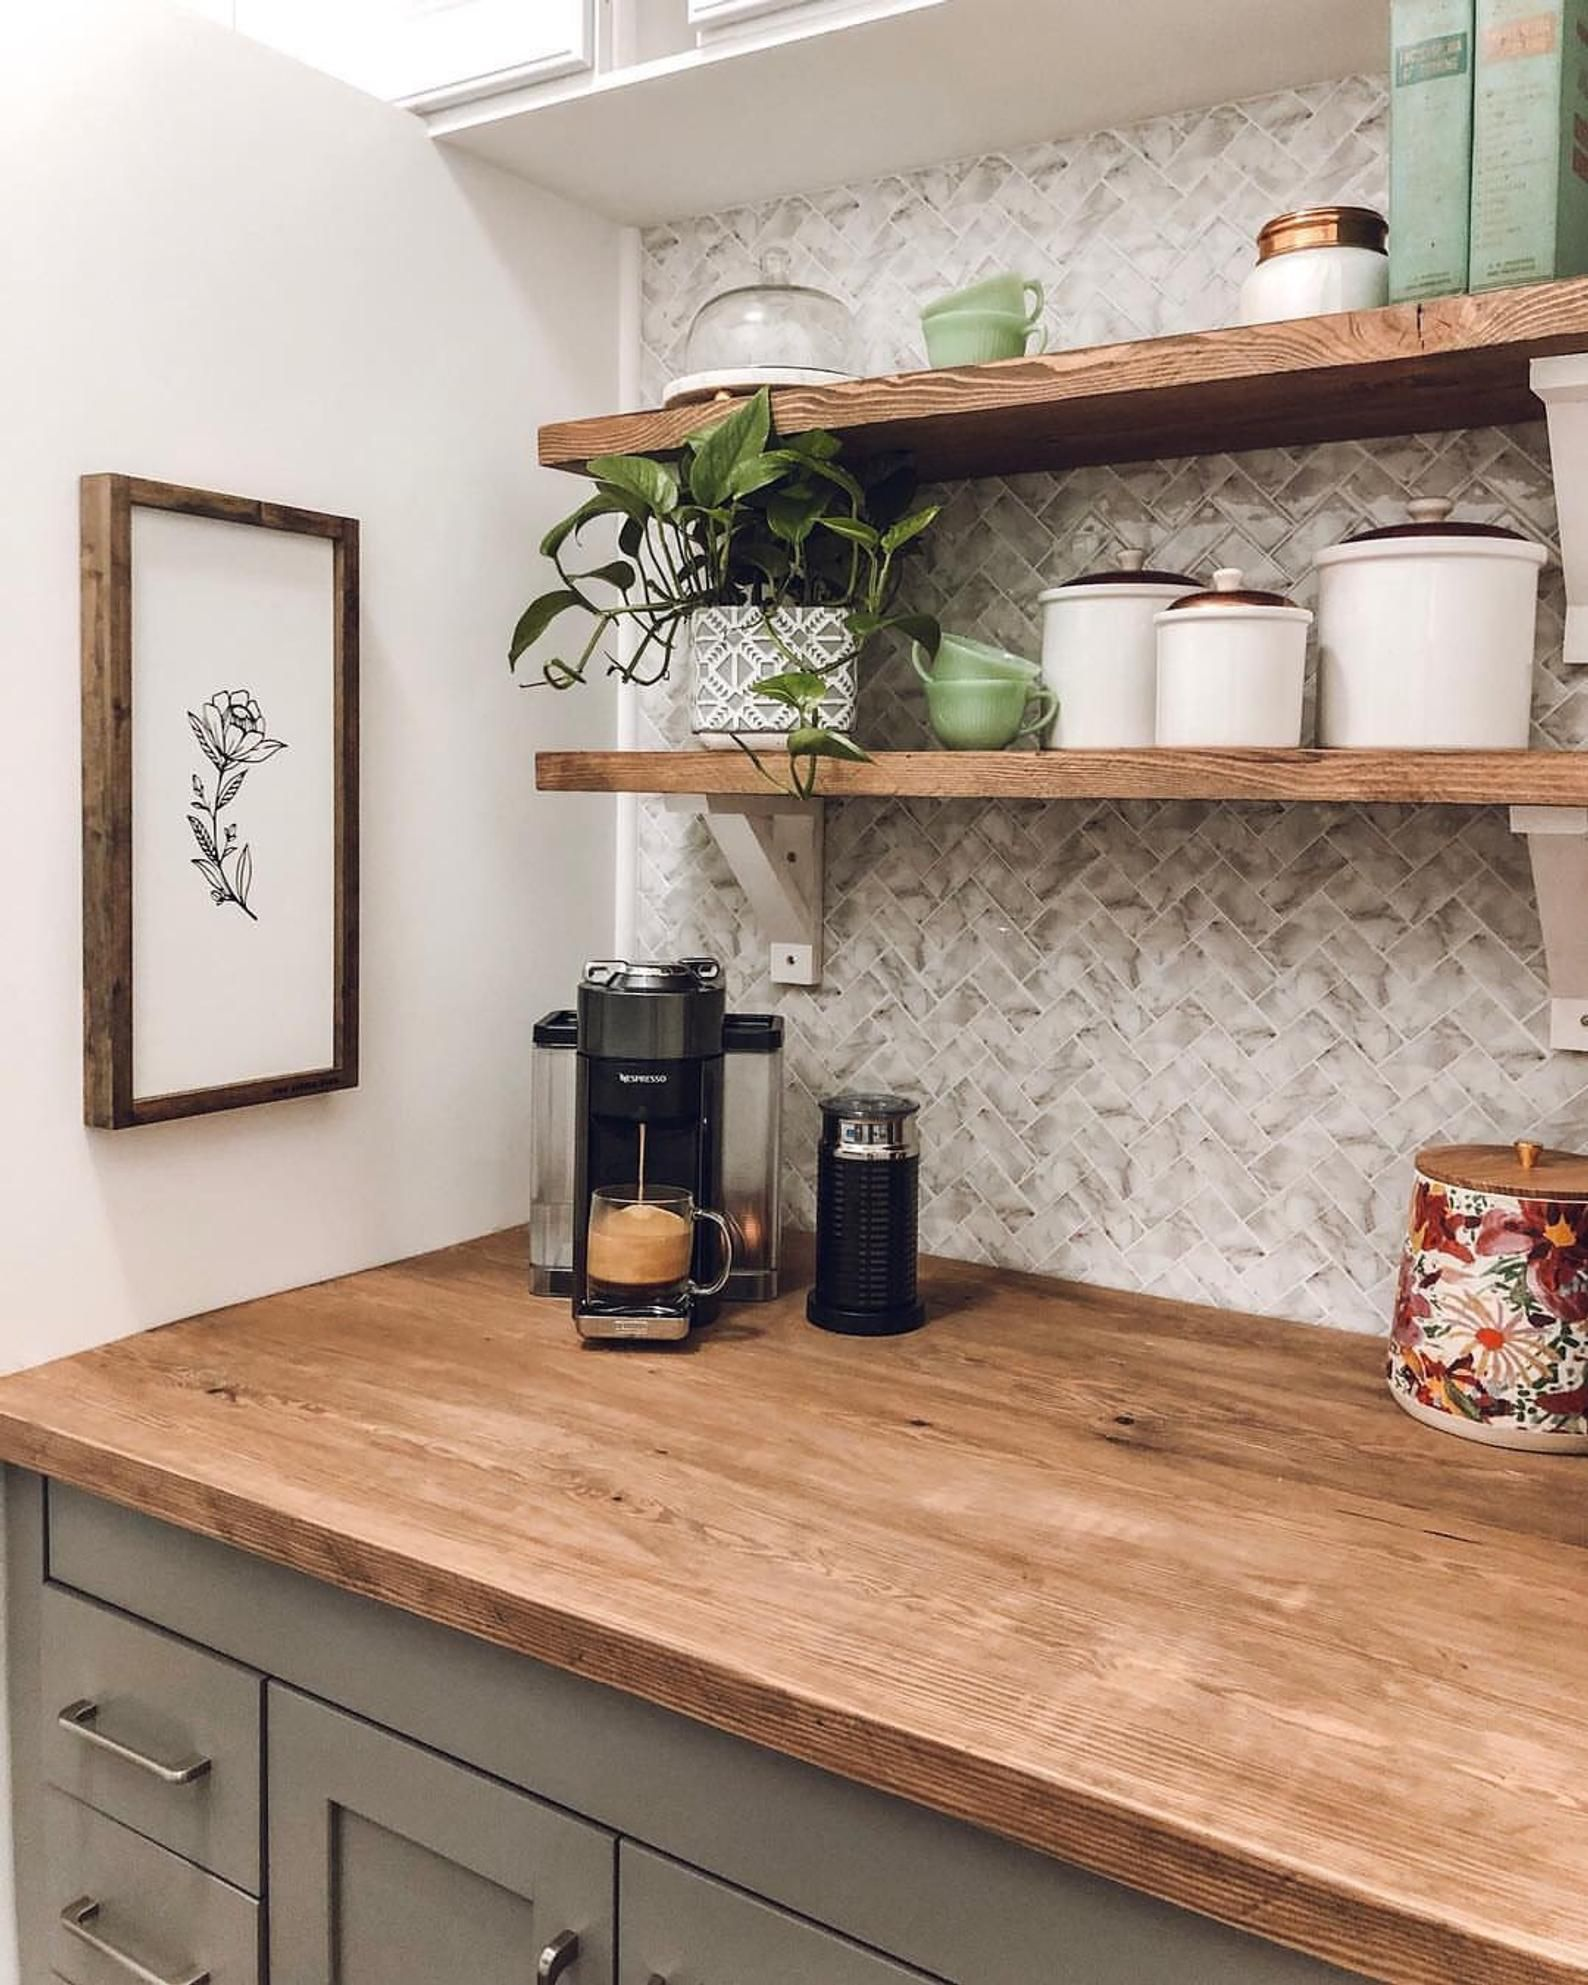 Wallpops Herringbone Carrara Marble Farmhouse Peel And Stick Backsplash Tile Nh2358 In 2020 With Images Rustic Kitchen Kitchen Remodel Scandinavian Kitchen